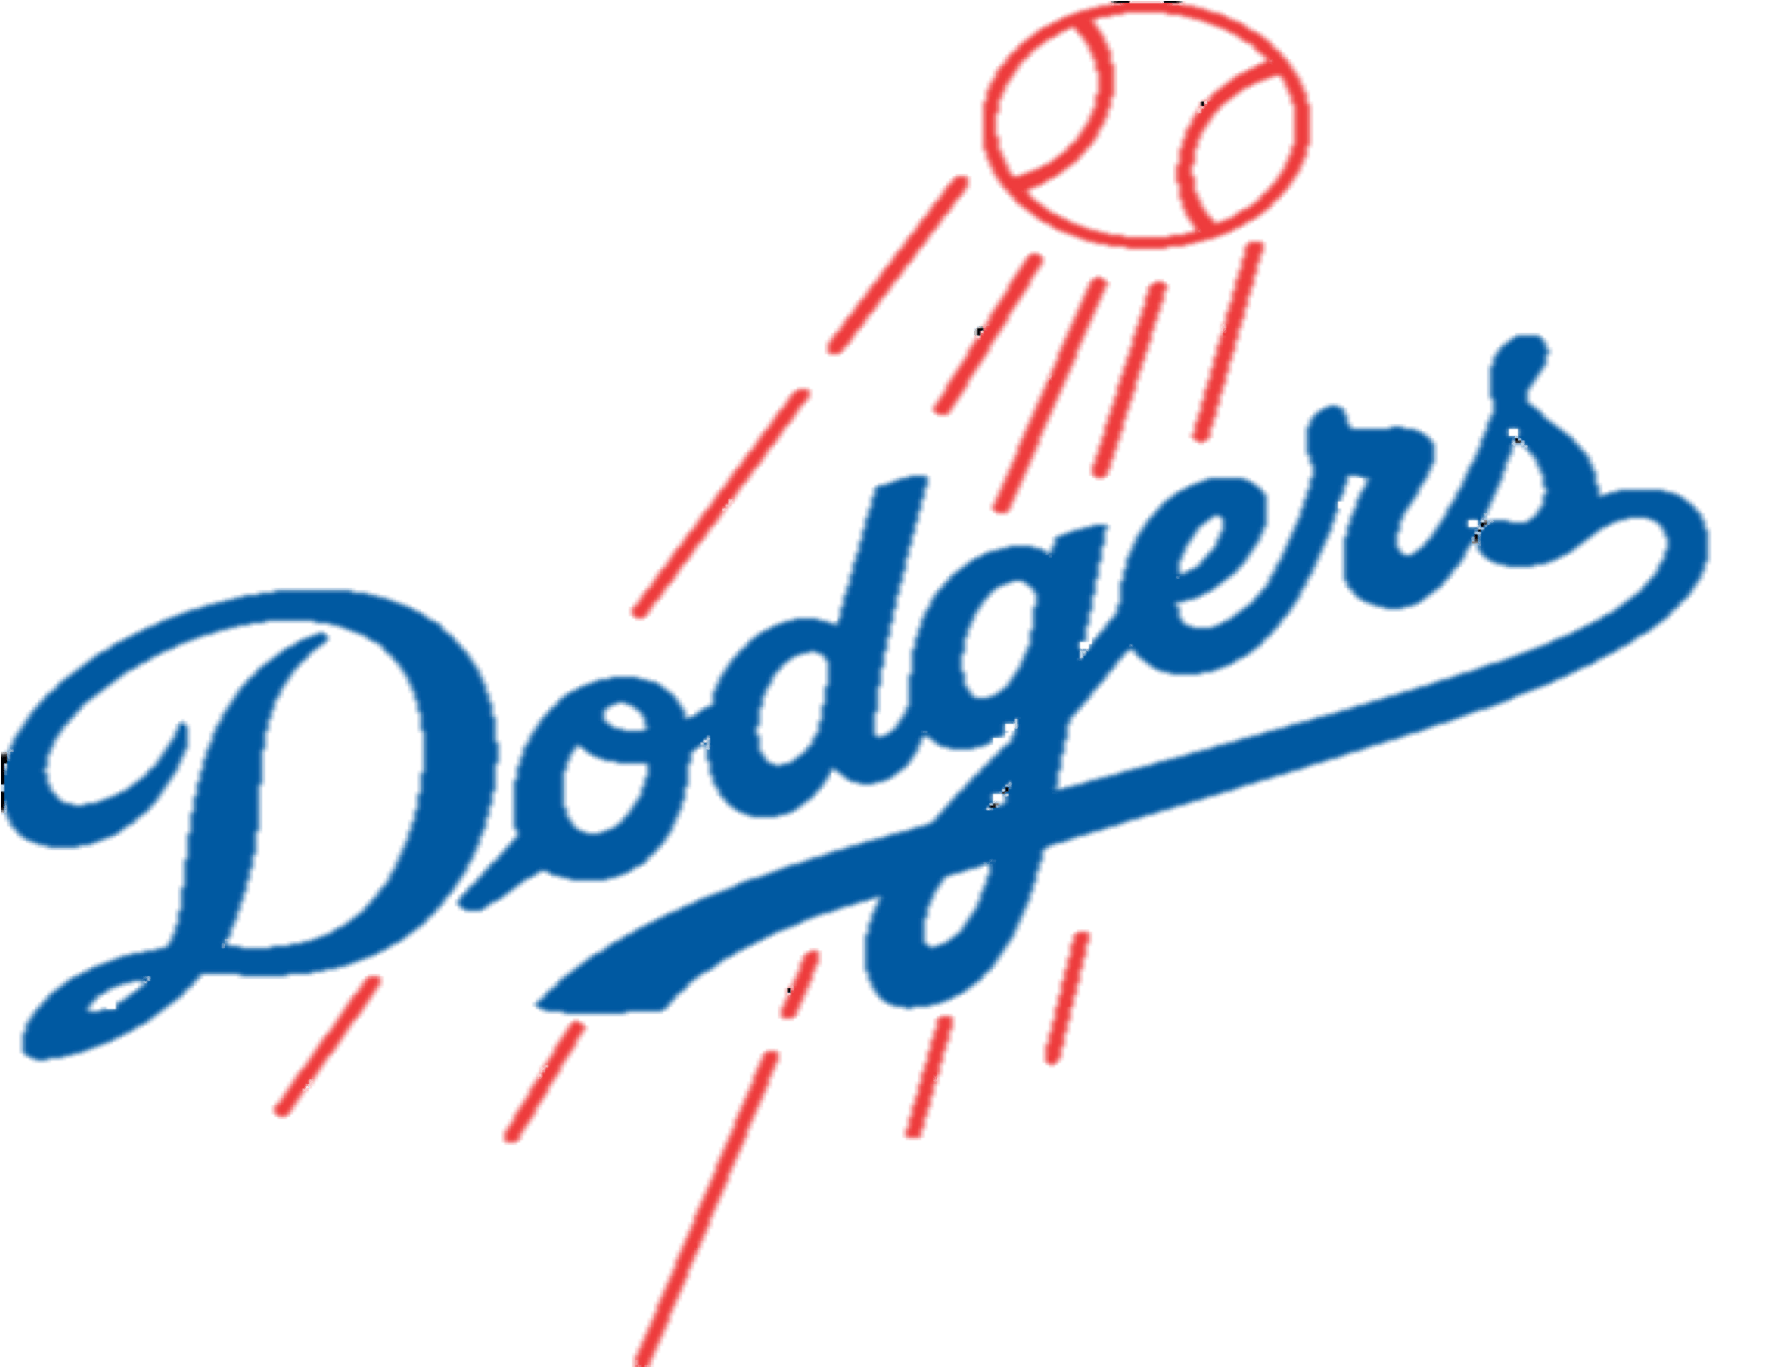 Los Angeles Dodgers Logo Baseball Wallpaper Los Angeles Dodgers The All Out Sports Network